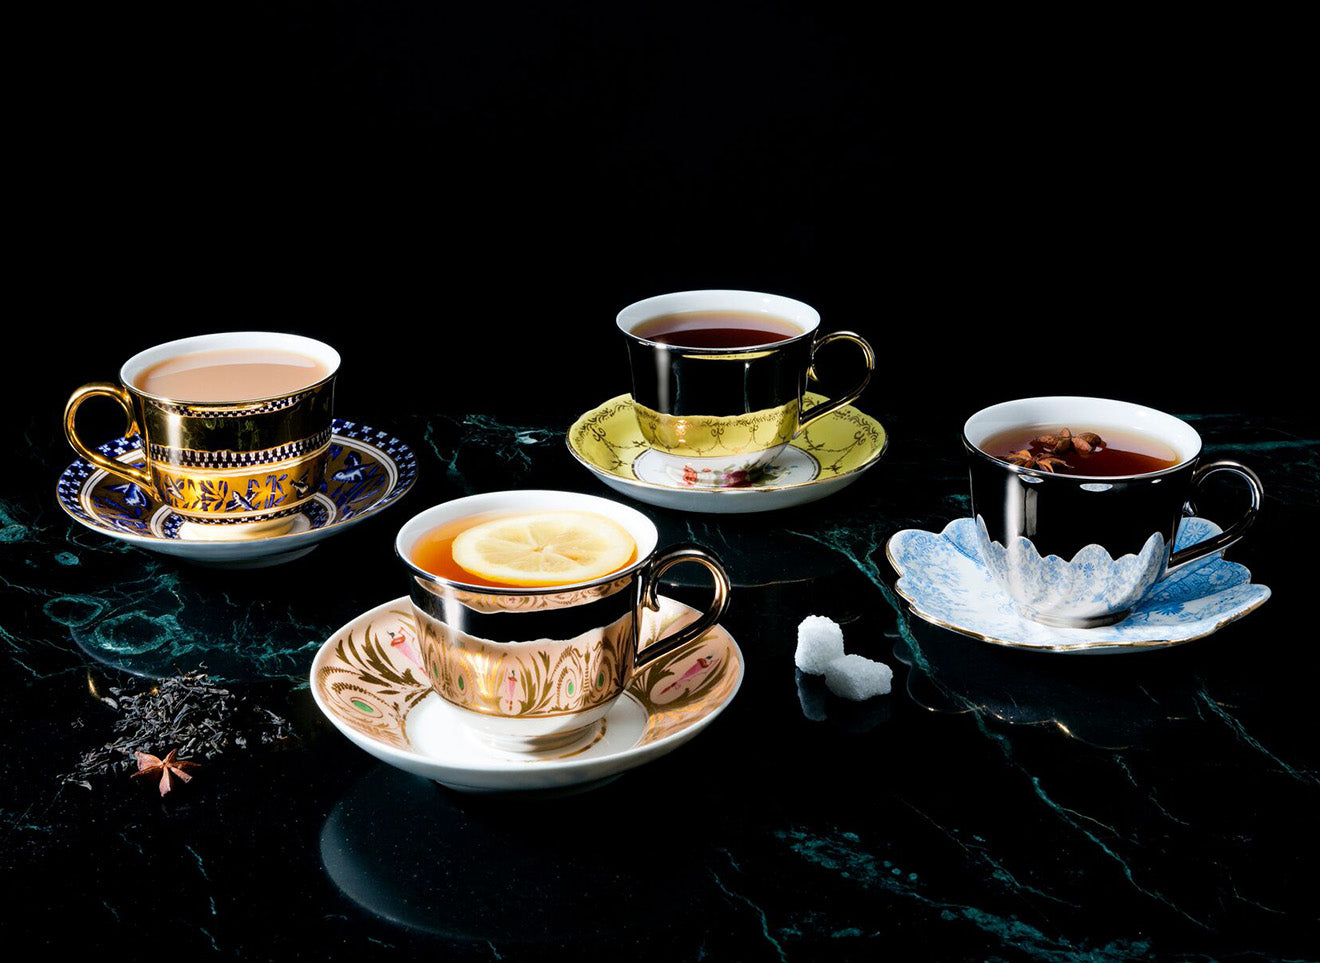 Richard Brendon Reflect cup and saucer designs